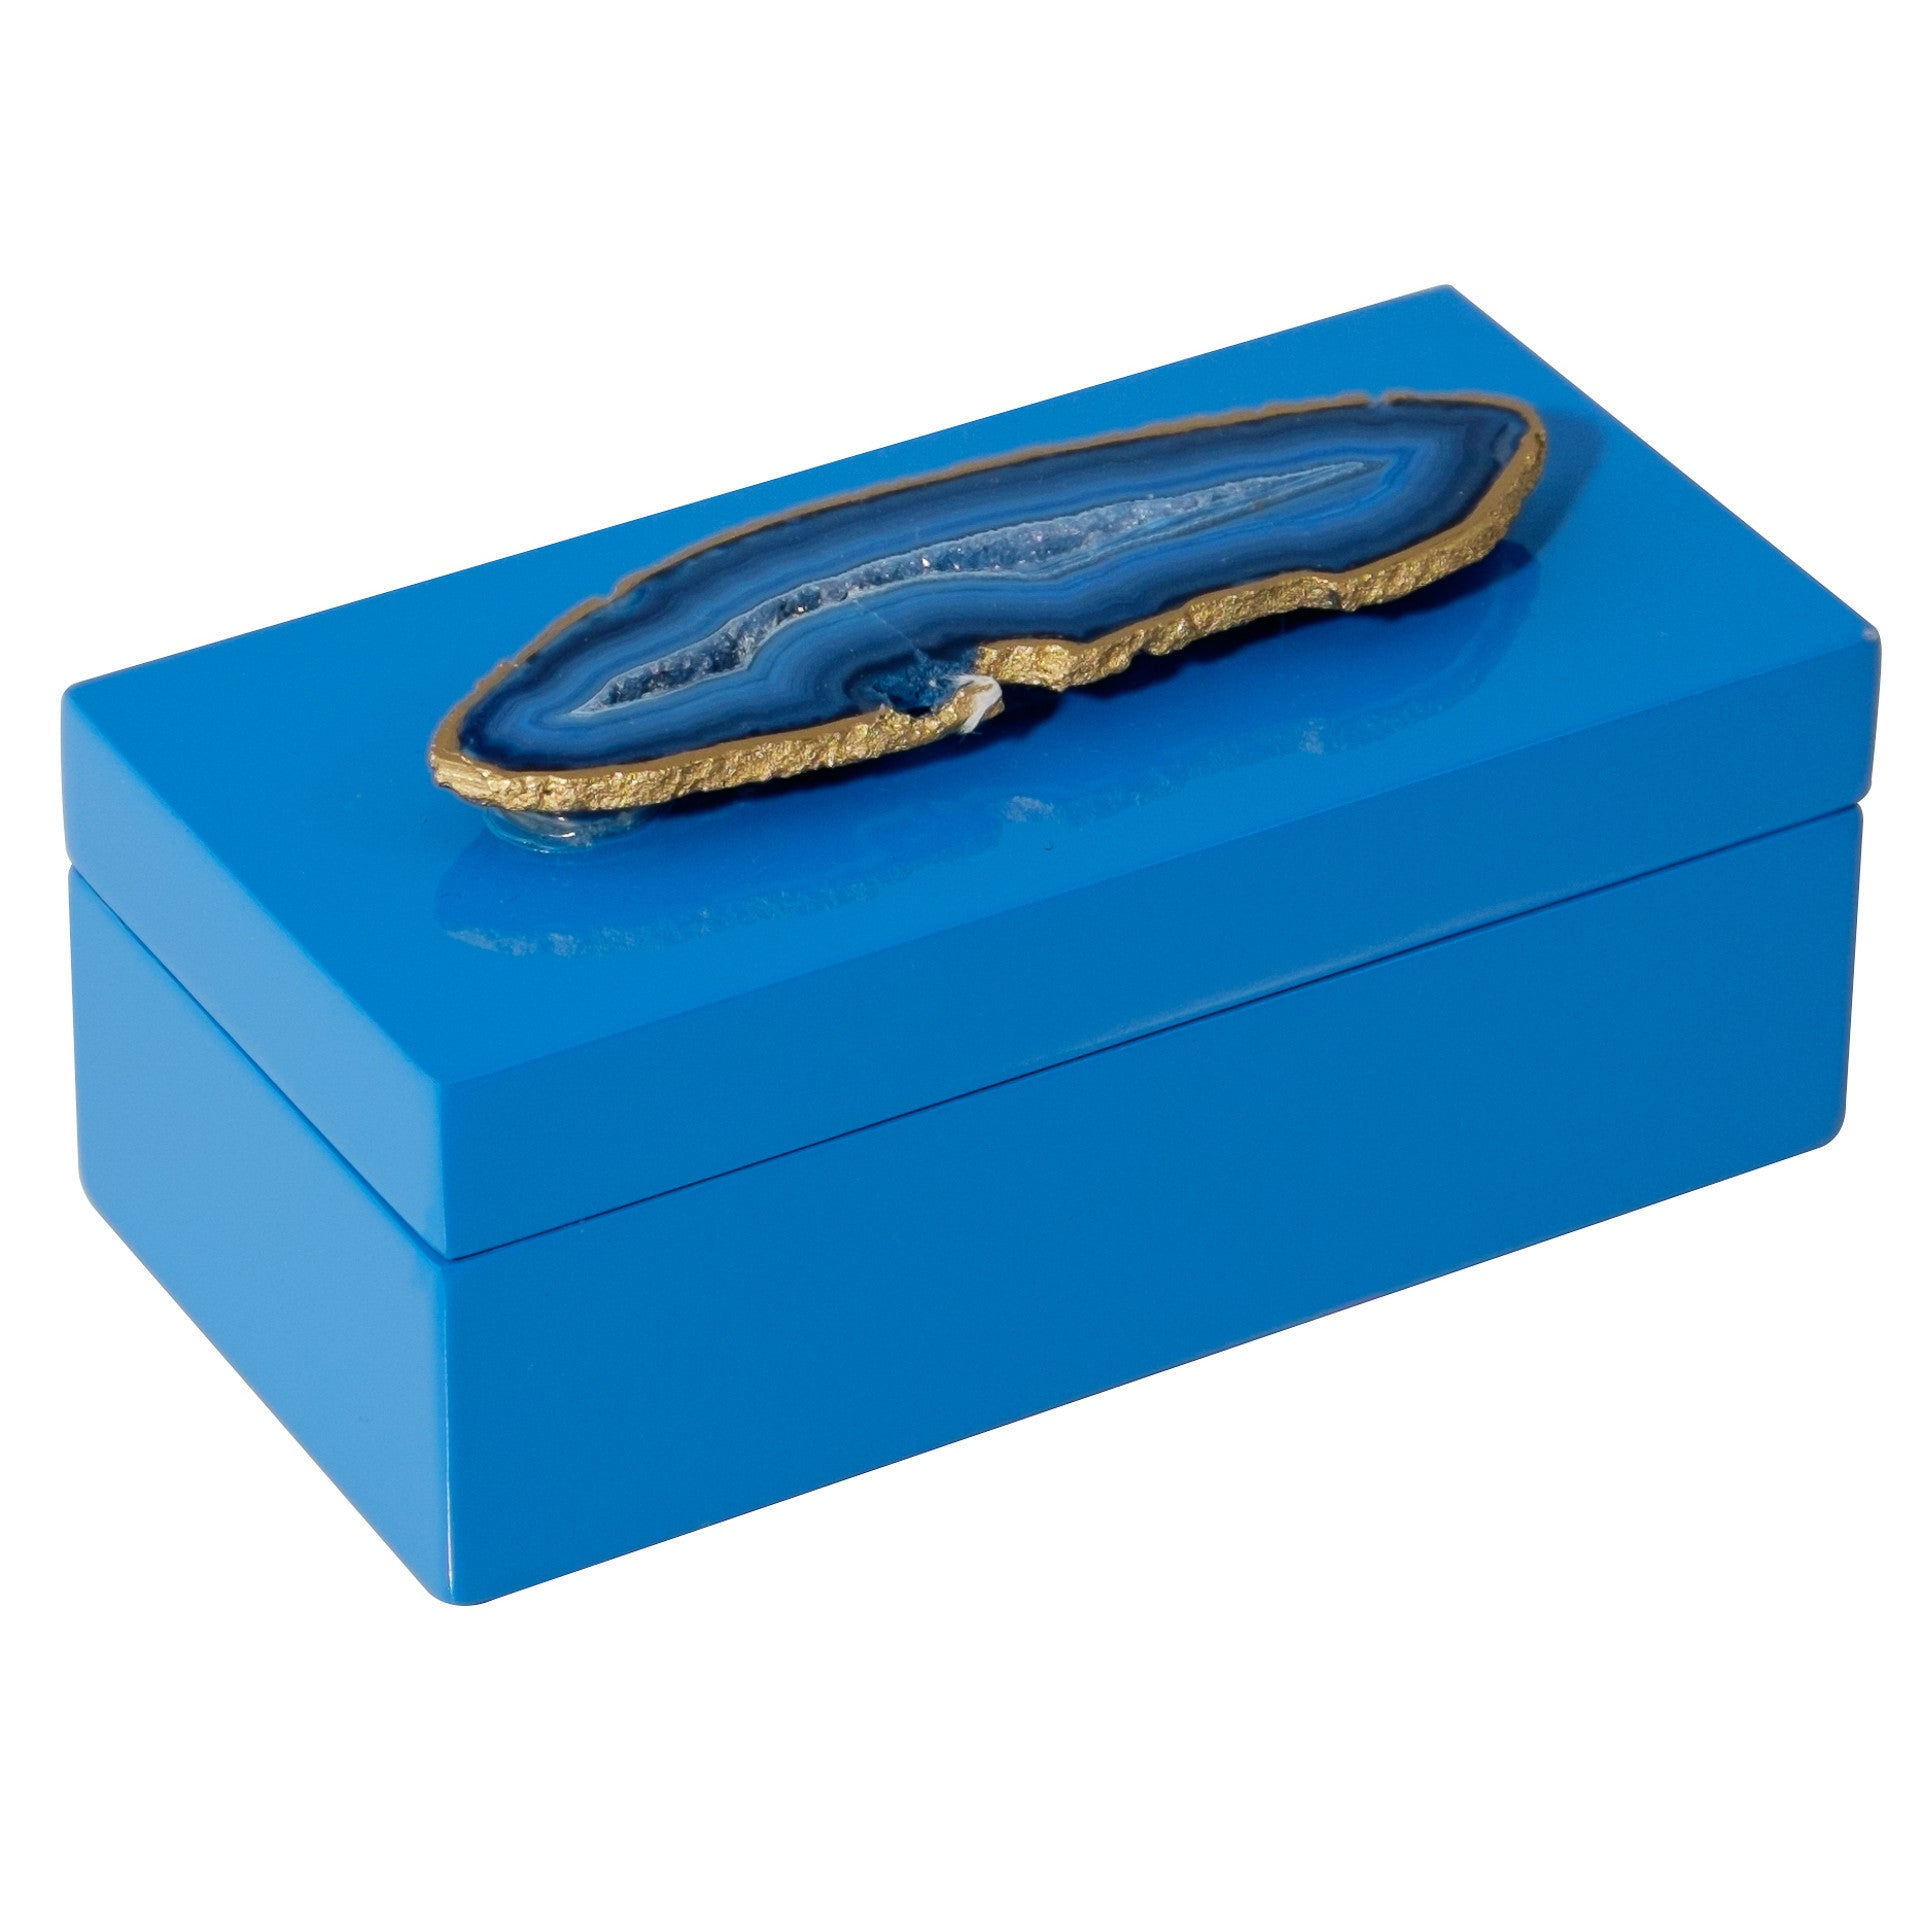 Medium Blue Lacquer Box with Blue Agate